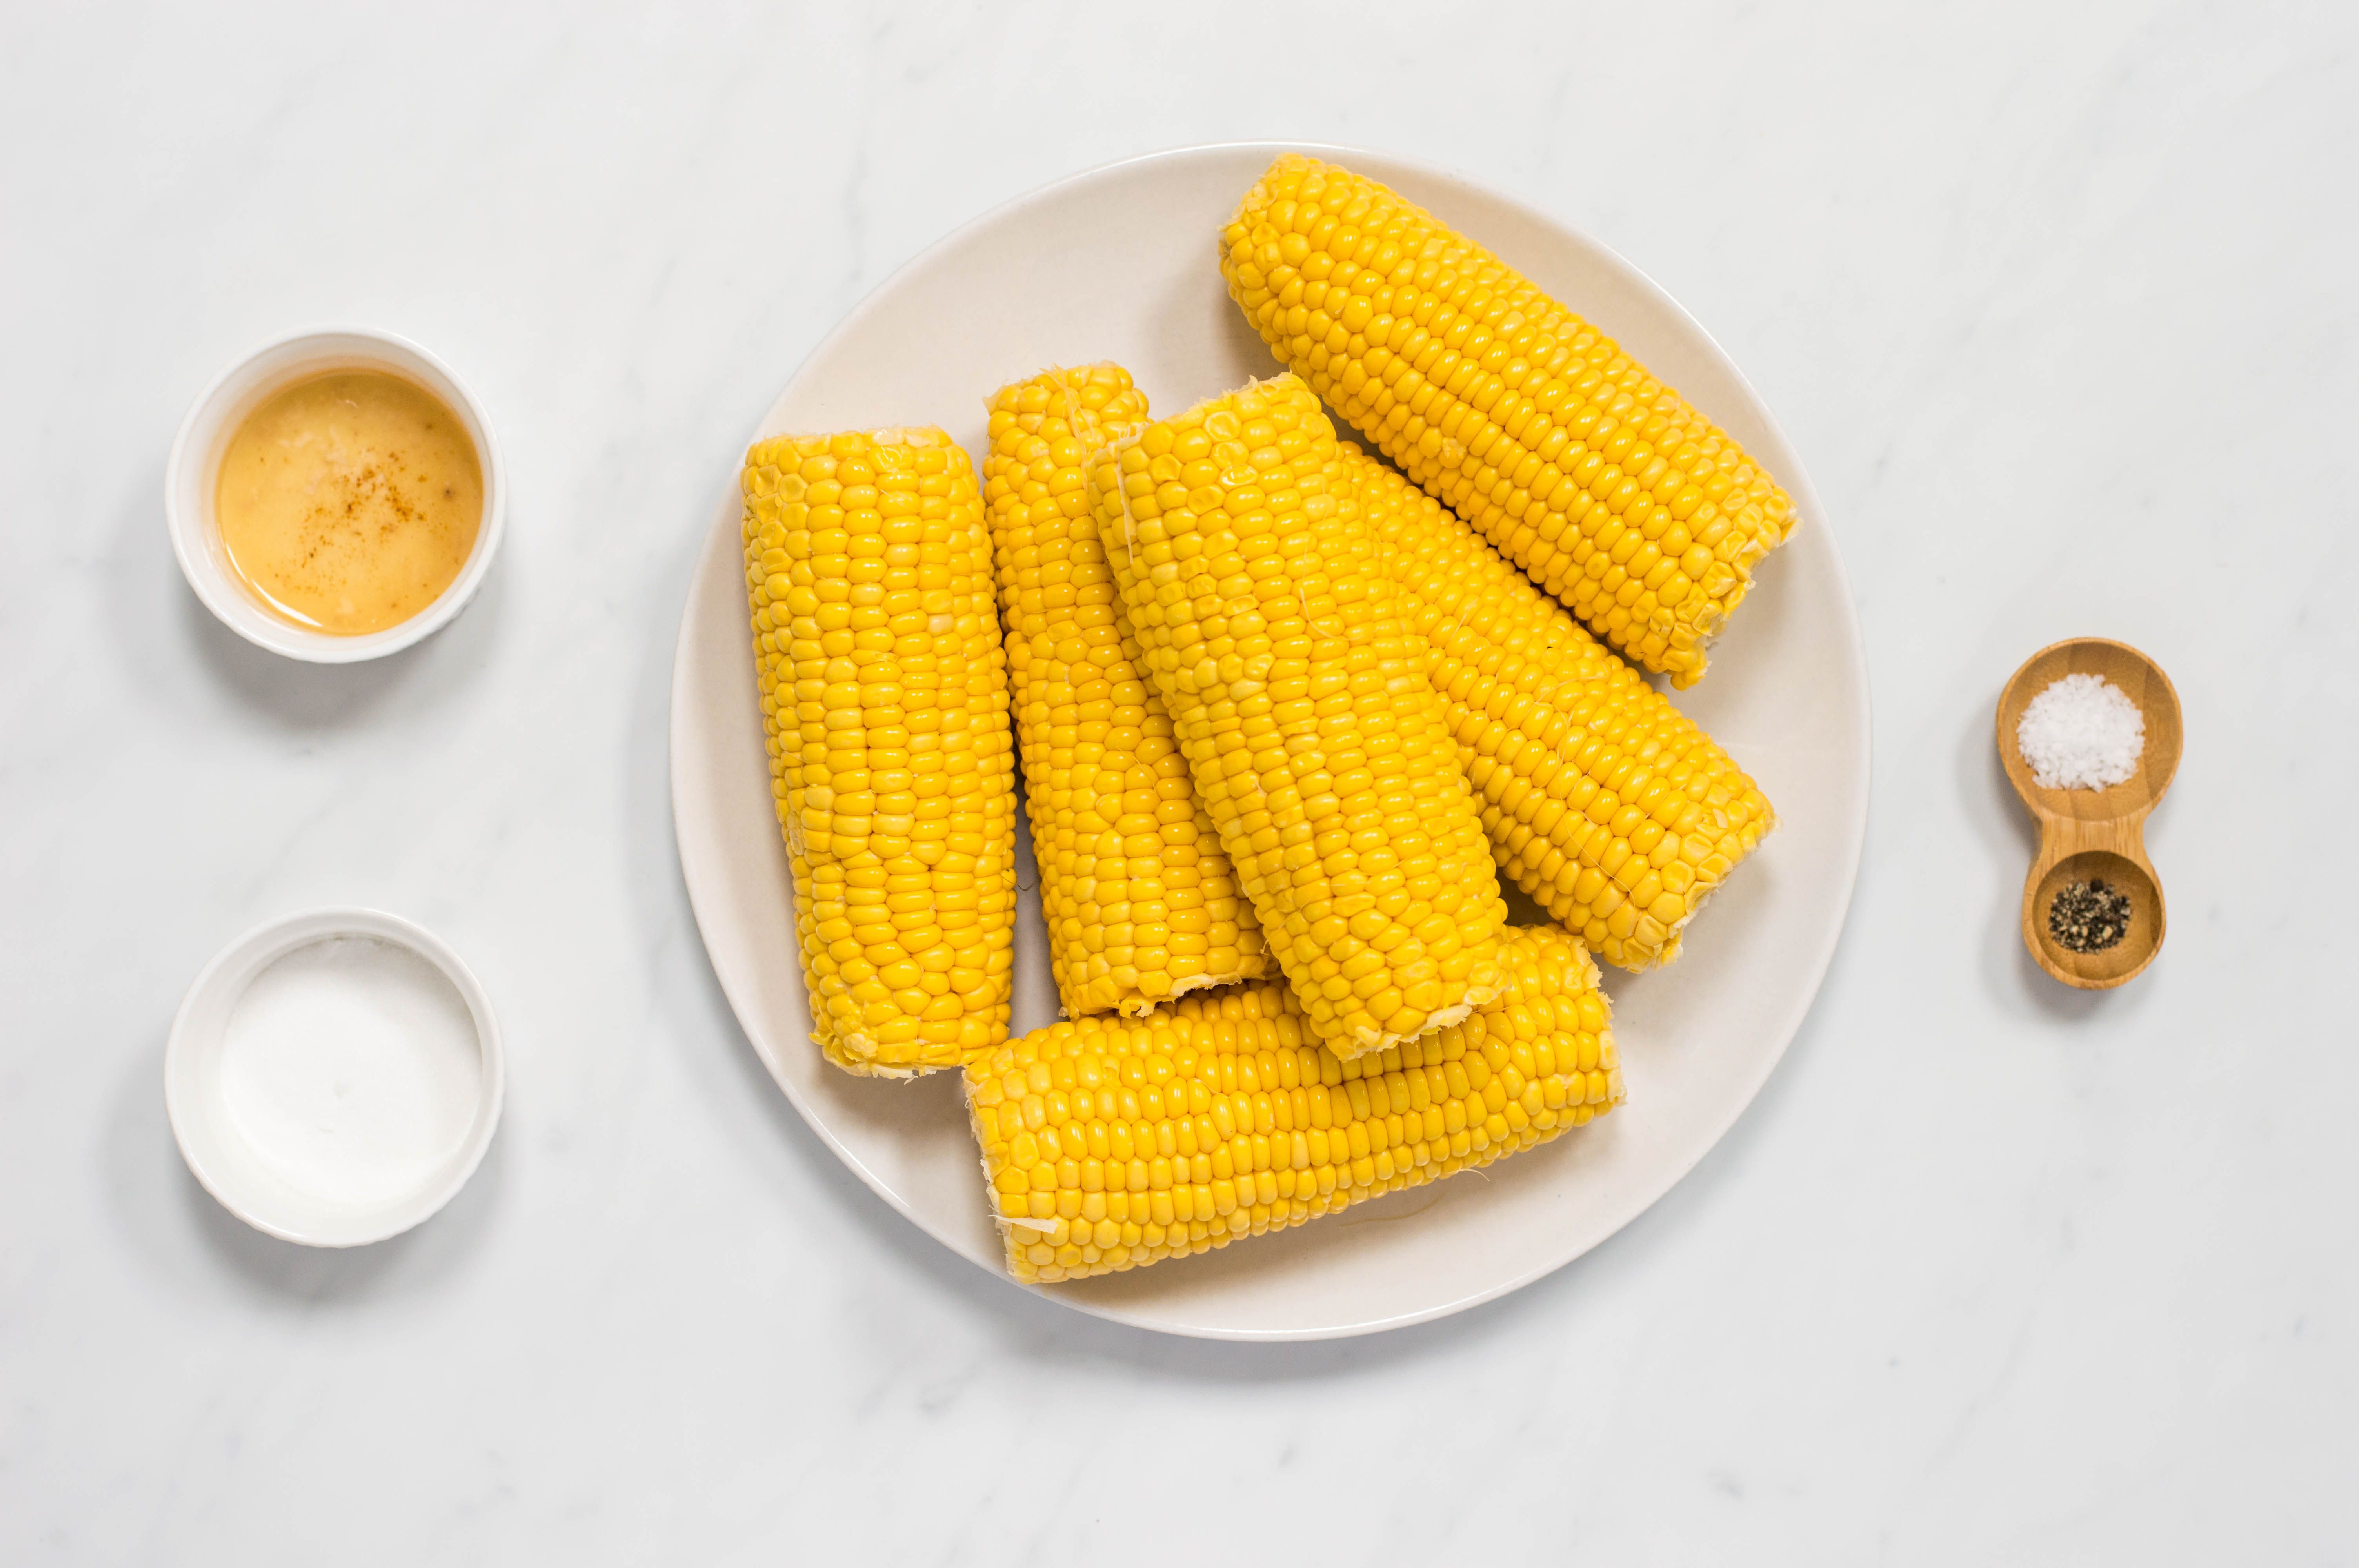 ingredients for Classic Skillet-Fried Corn Recipe